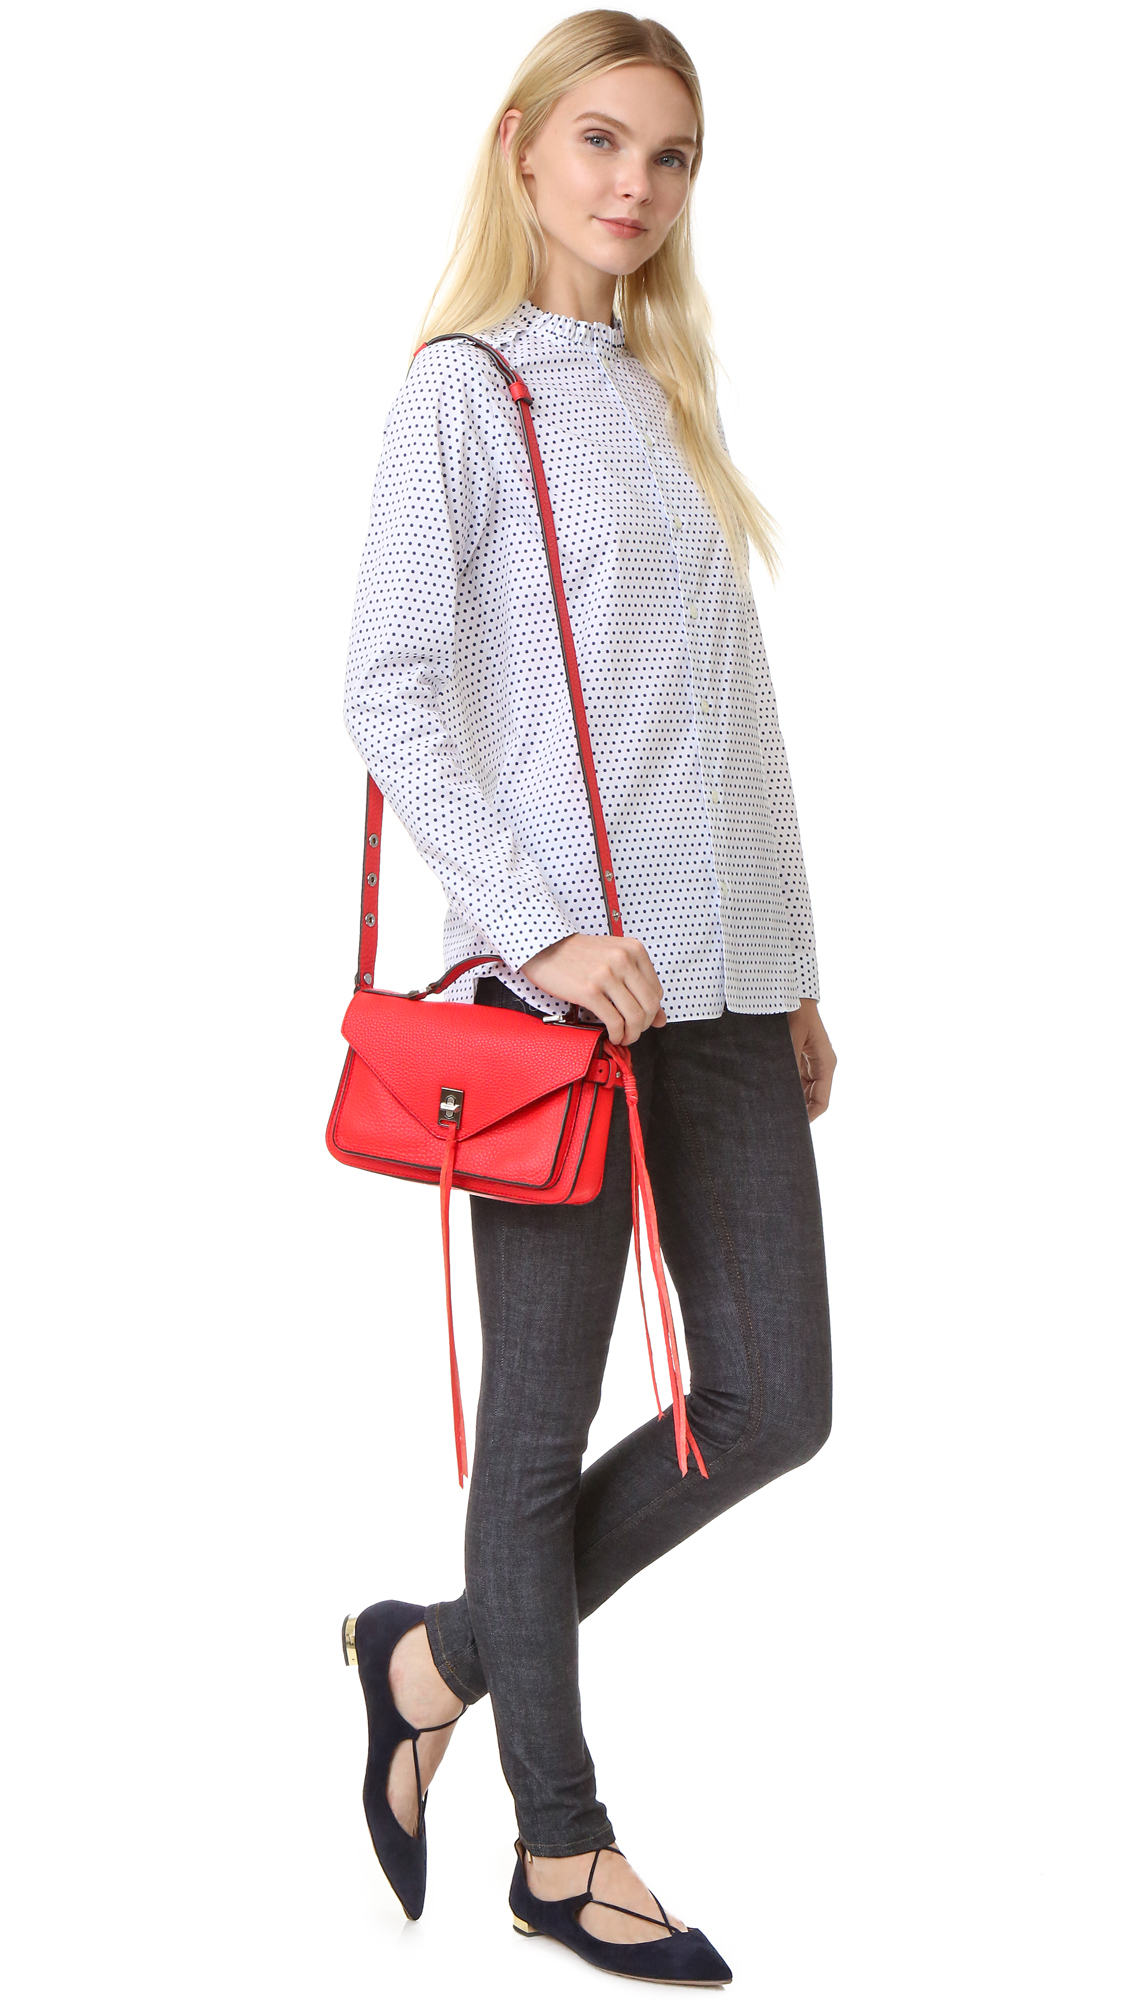 d0f209b2cd Rebecca Minkoff Small Darren Messenger Bag